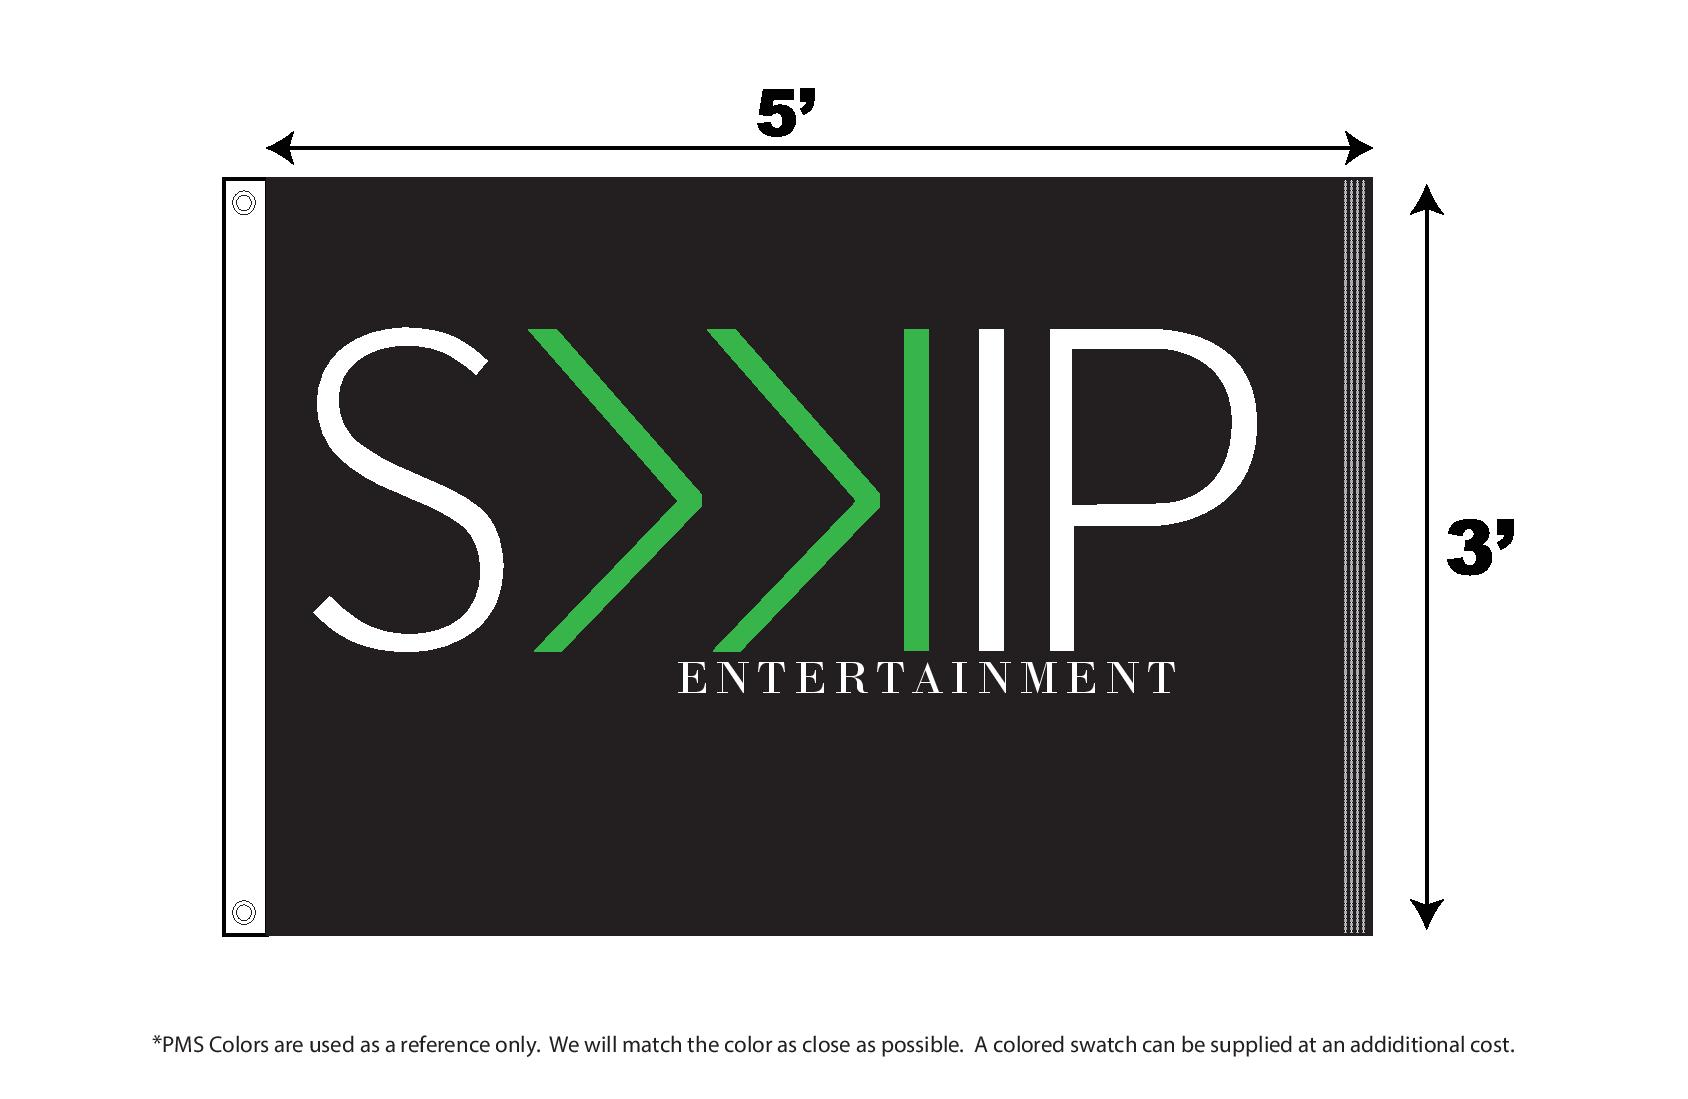 SKIP Entertainment